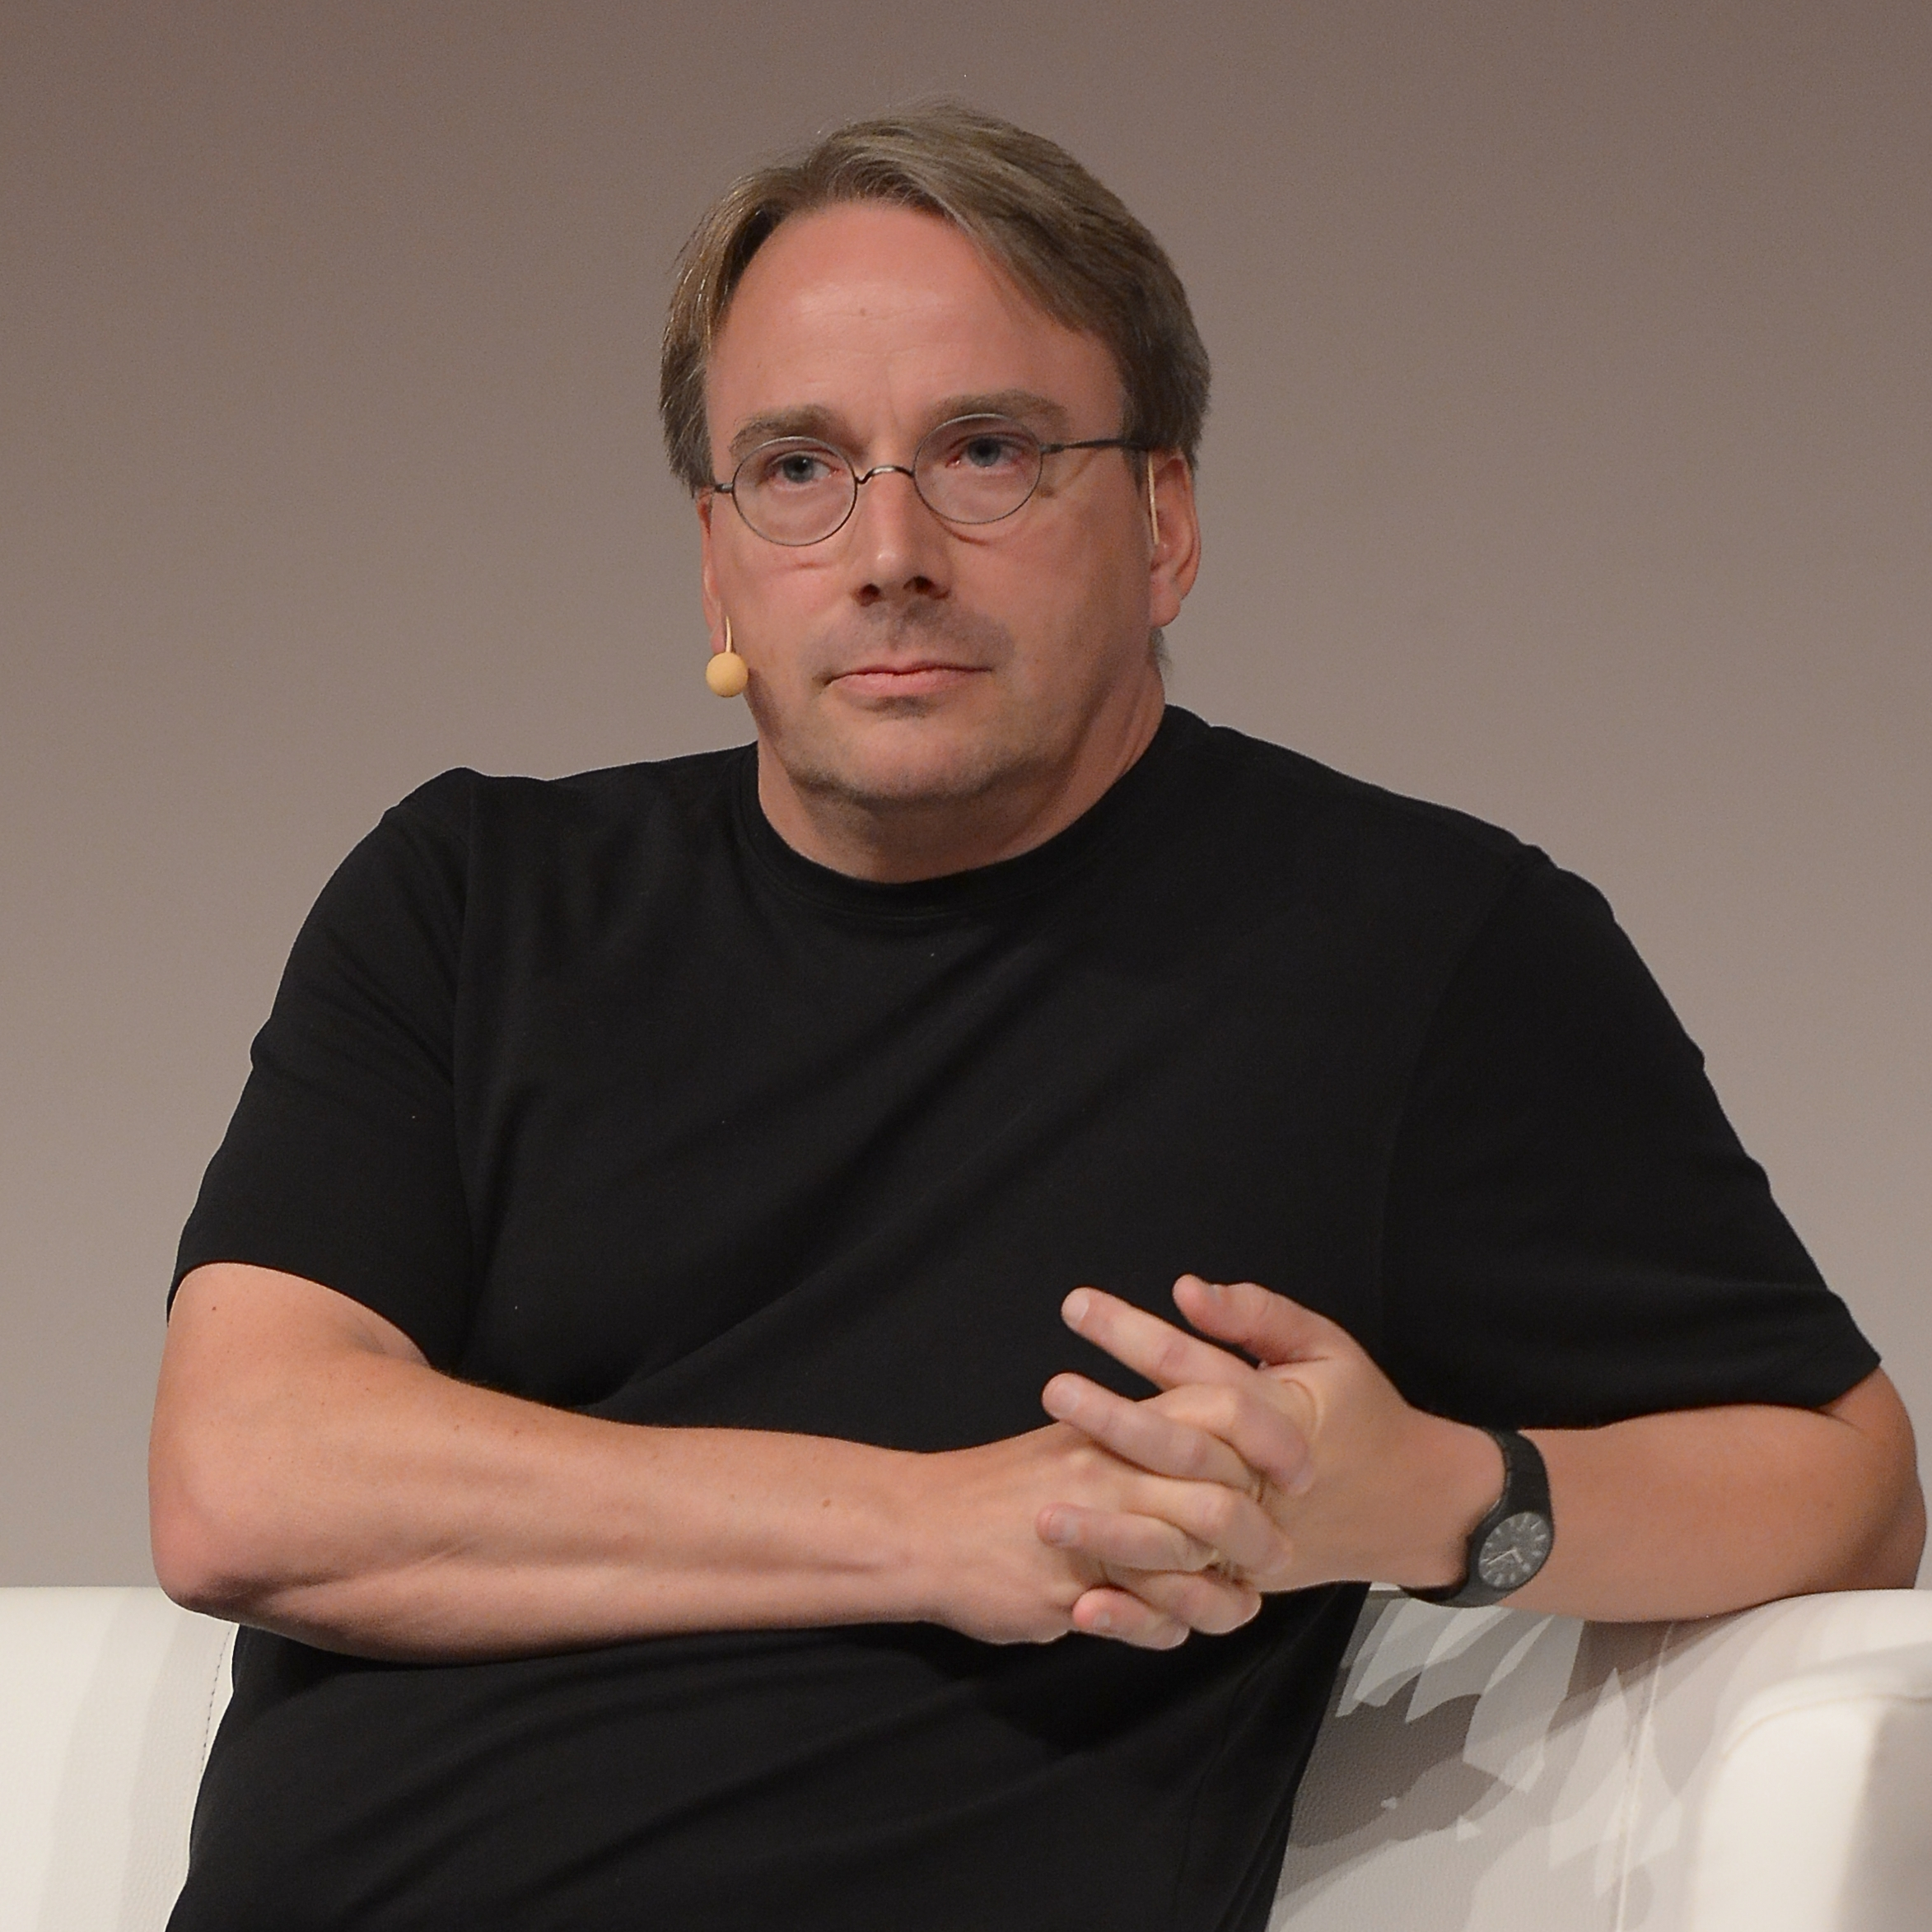 Linus Torvalds Net Worth